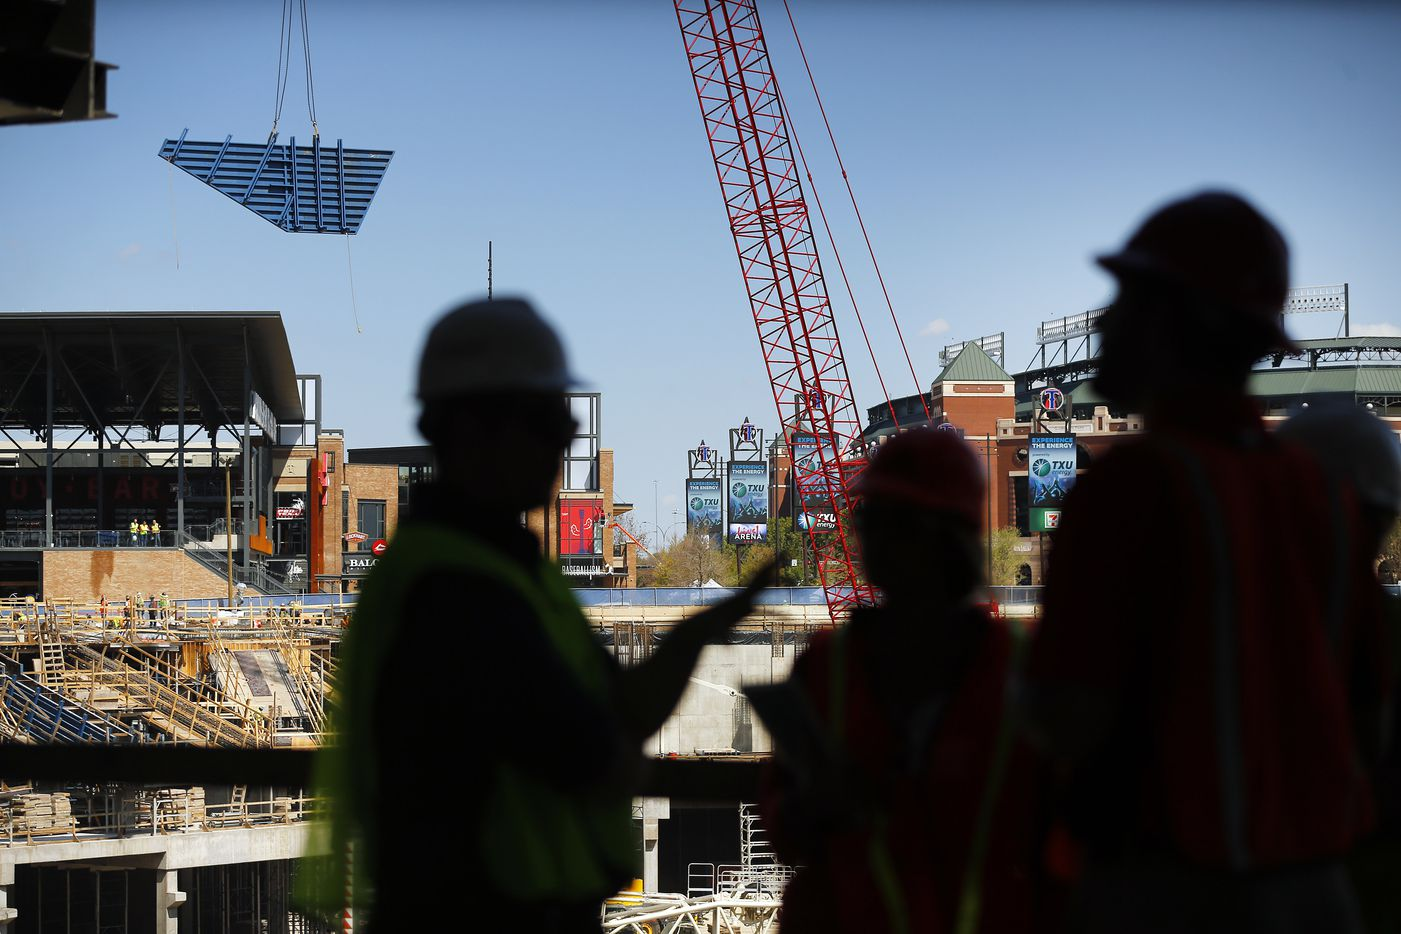 A large piece of decking is moved by a crane during a press event at the new Globe Life Field under construction in Arlington, Texas, Tuesday, September 18, 2018. The Texas Rangers and Manhattan Construction celebrated the One Million Man Hours by providing a barbecue lunch for it's nearly 900 construction workers. (Tom Fox/The Dallas Morning News)